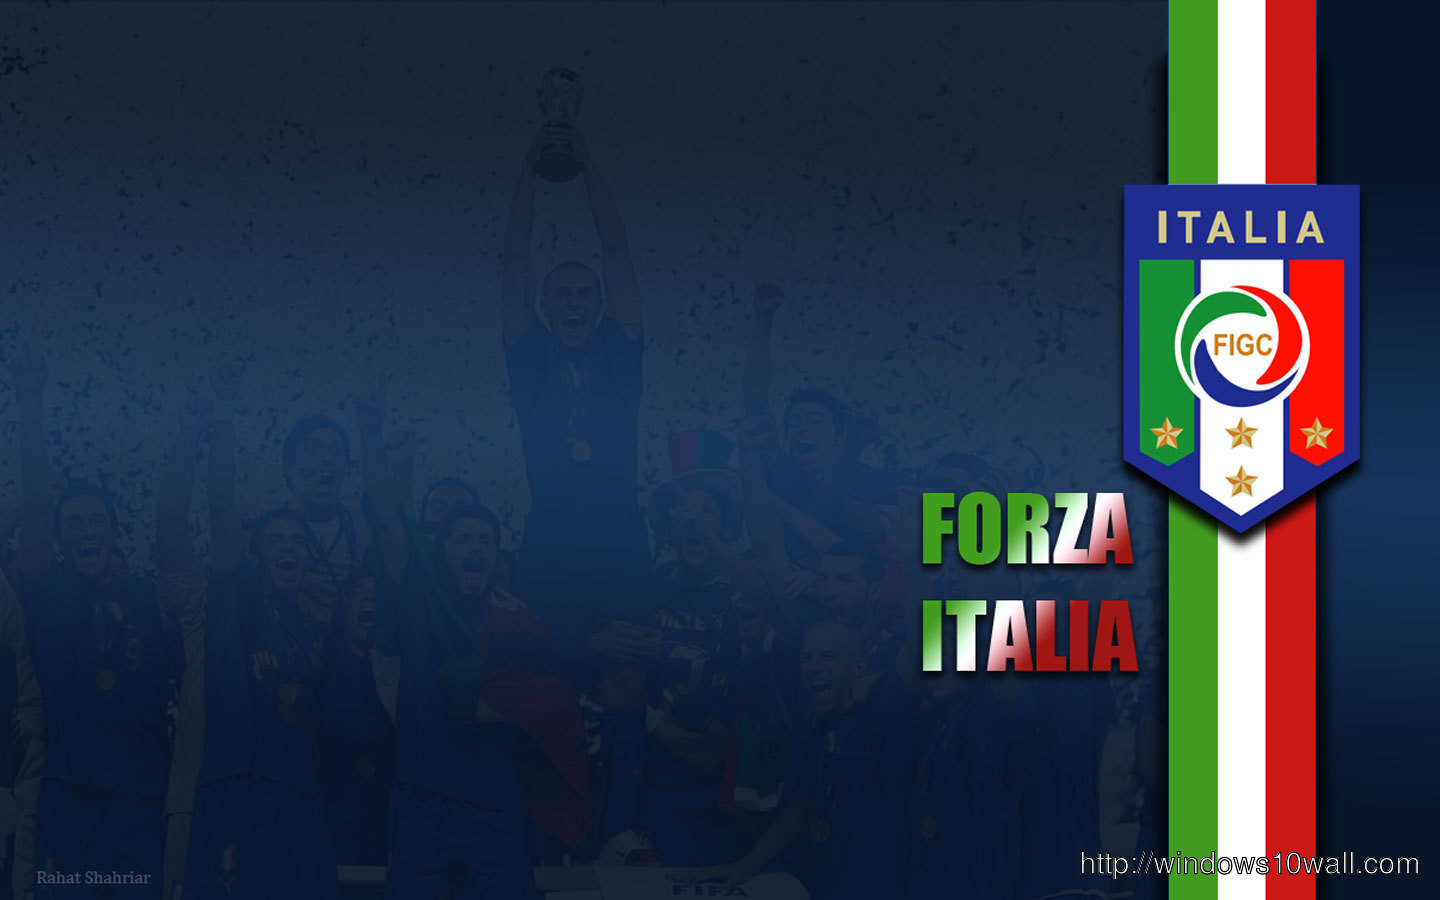 Forza Italia Background Wallpaper Windows 10 Wallpapers